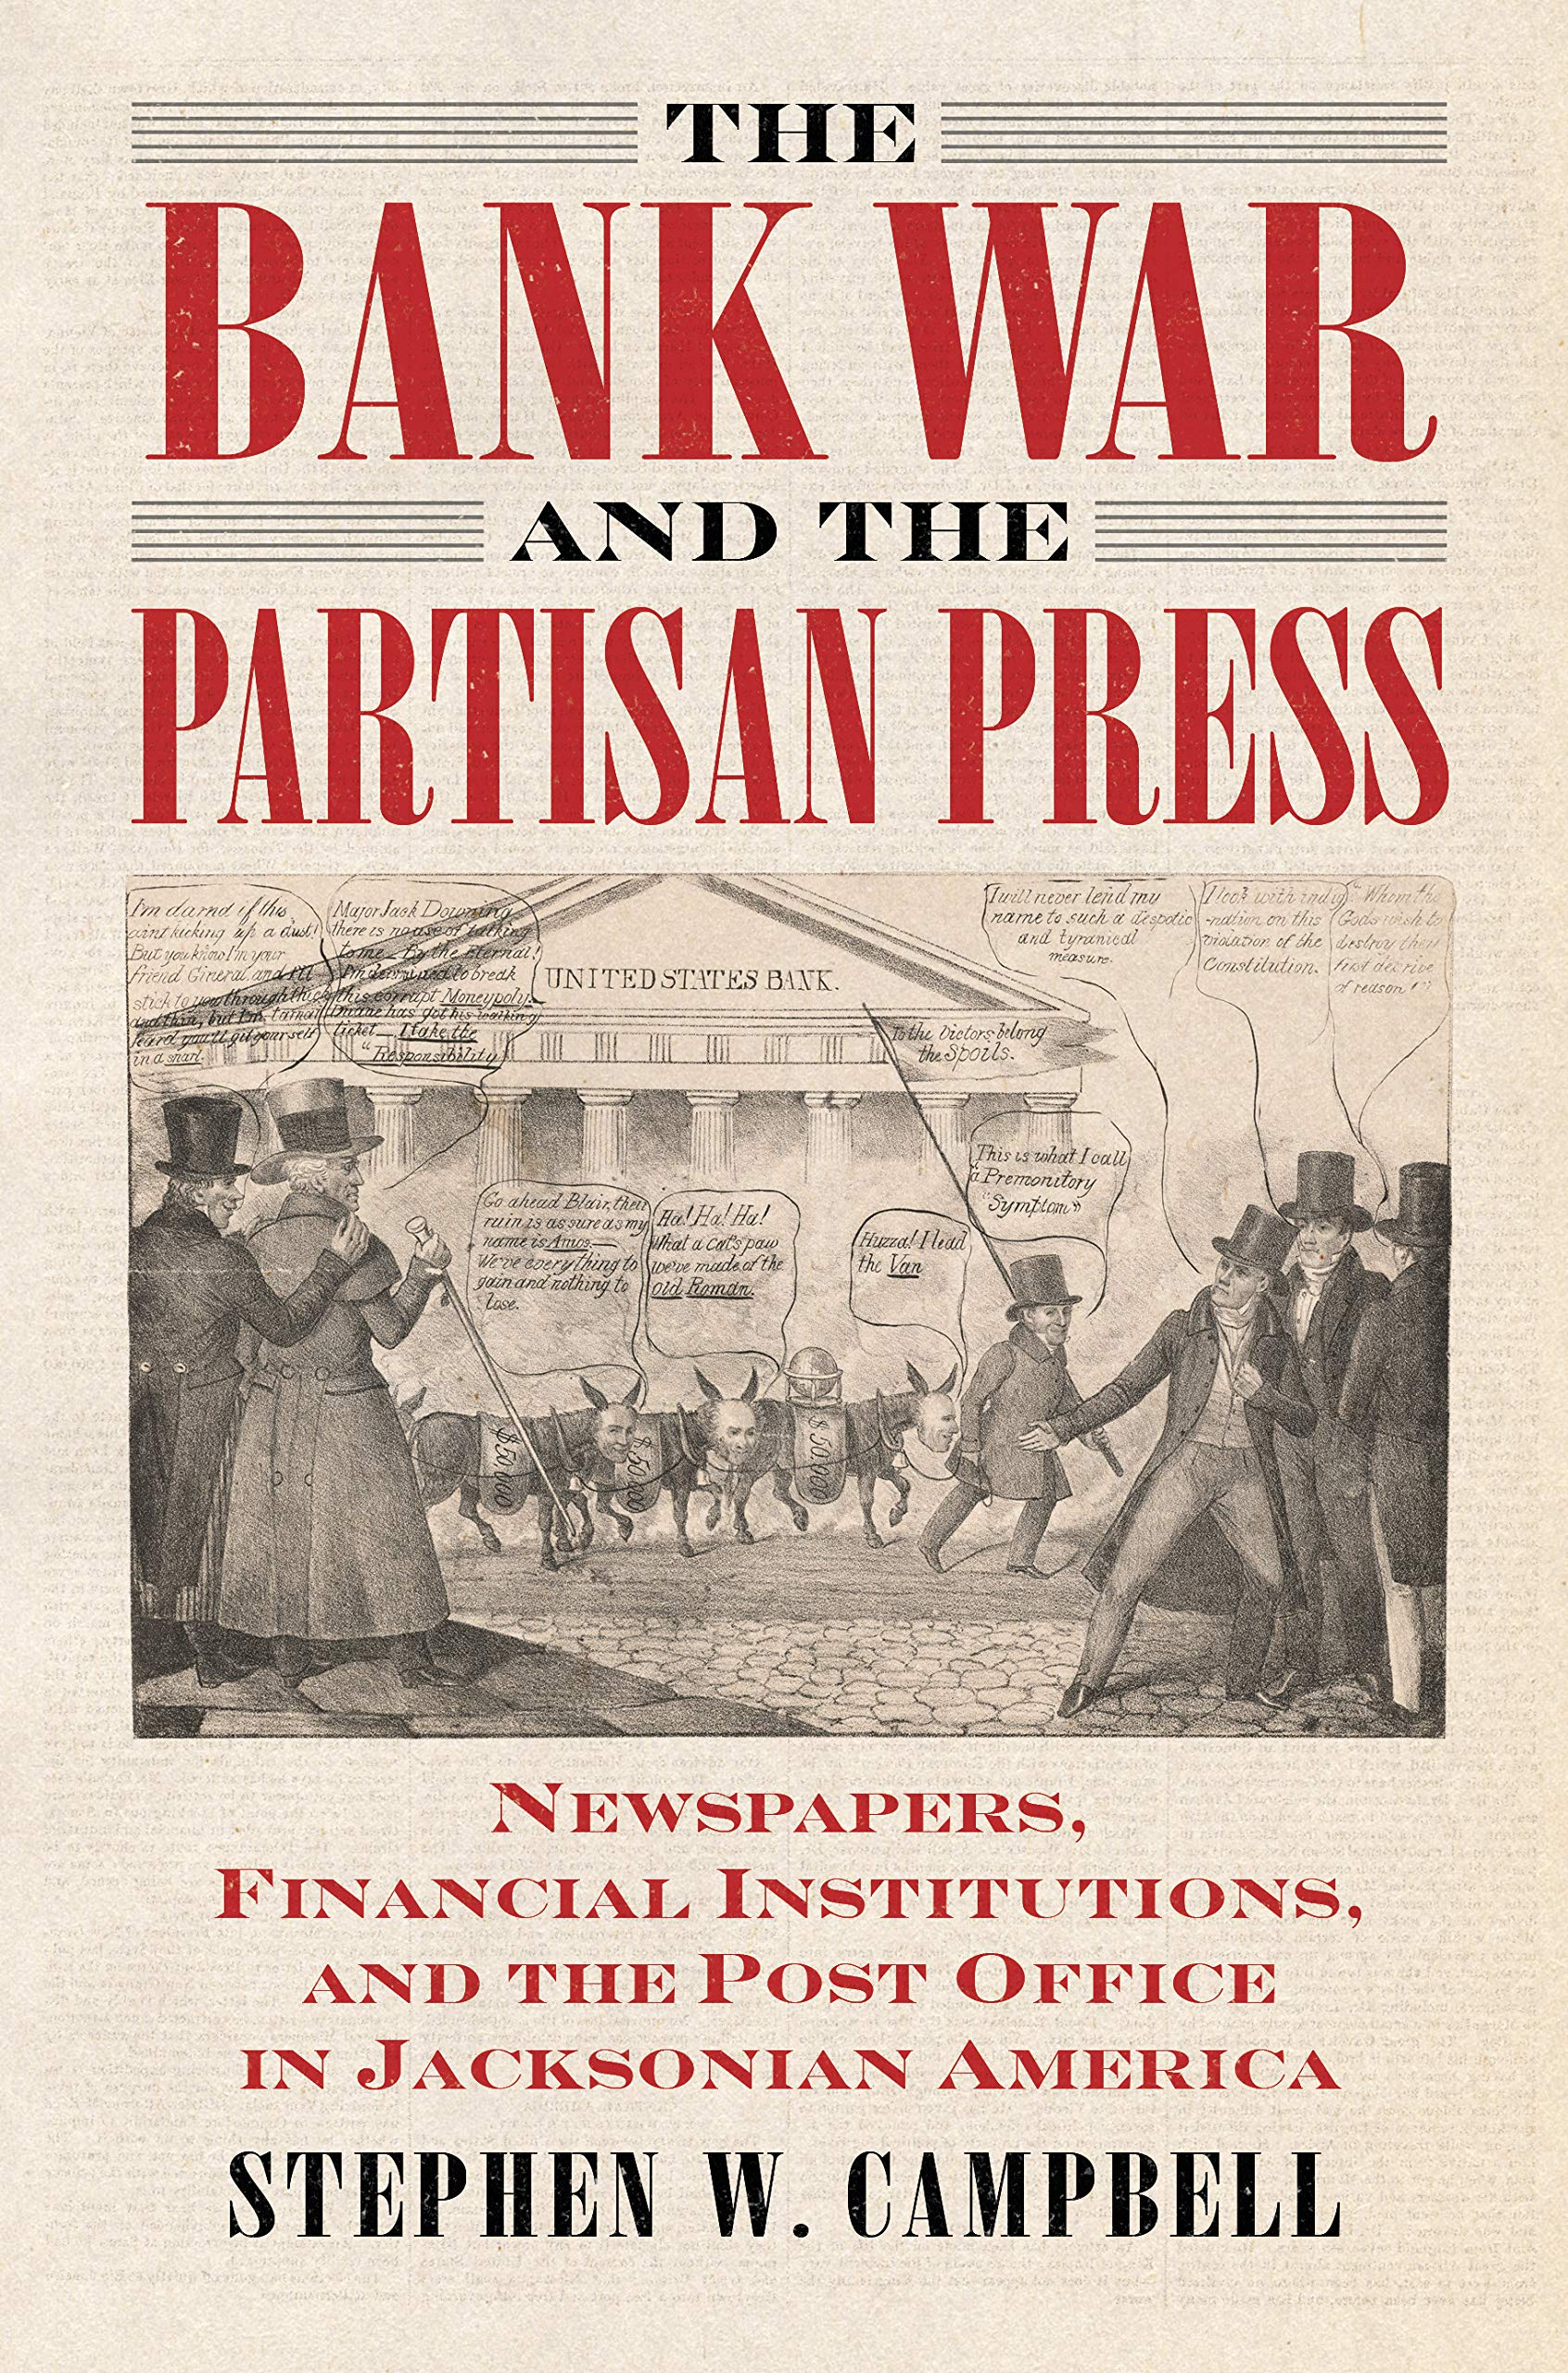 The Bank War And The Partisan Press Newspapers Financial Institutions And The Post Office In Jacksonian America Campbell Stephen 9780700627448 Amazon Com Books